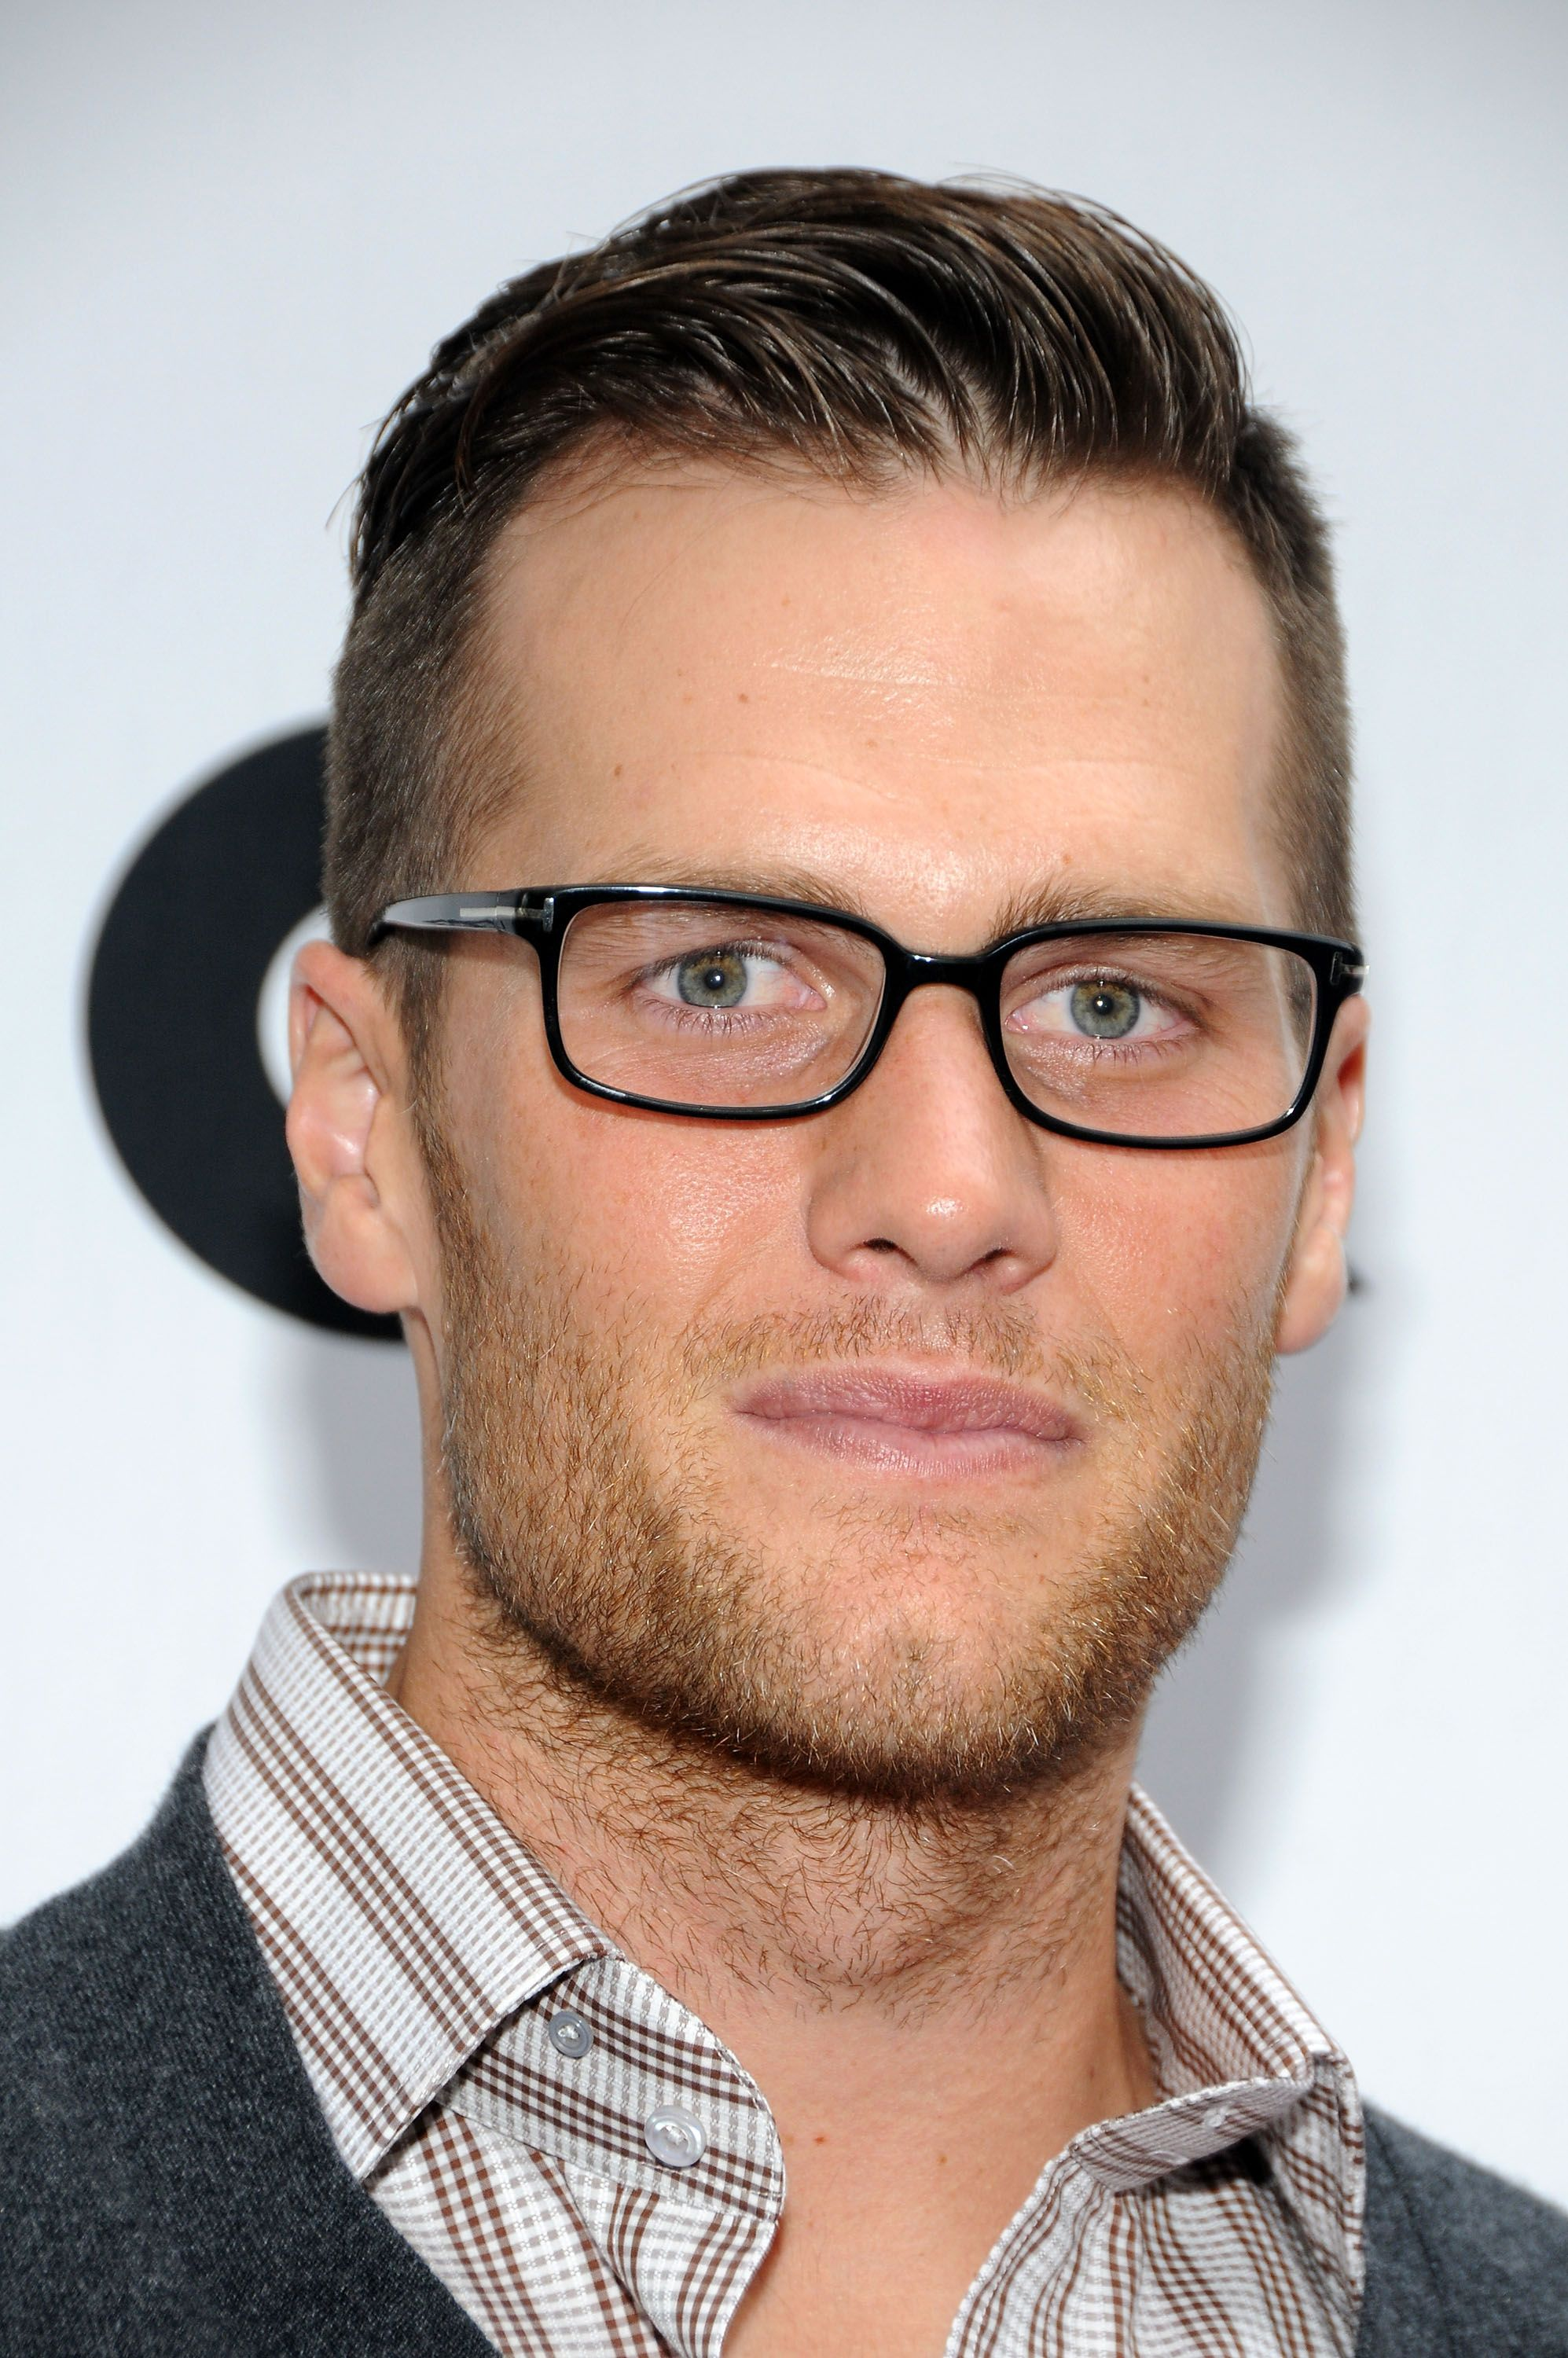 Tom Brady Specs Up His Look For Ugg Opening Mens Glasses Mens Hairstyles Undercut Mens Hairstyles